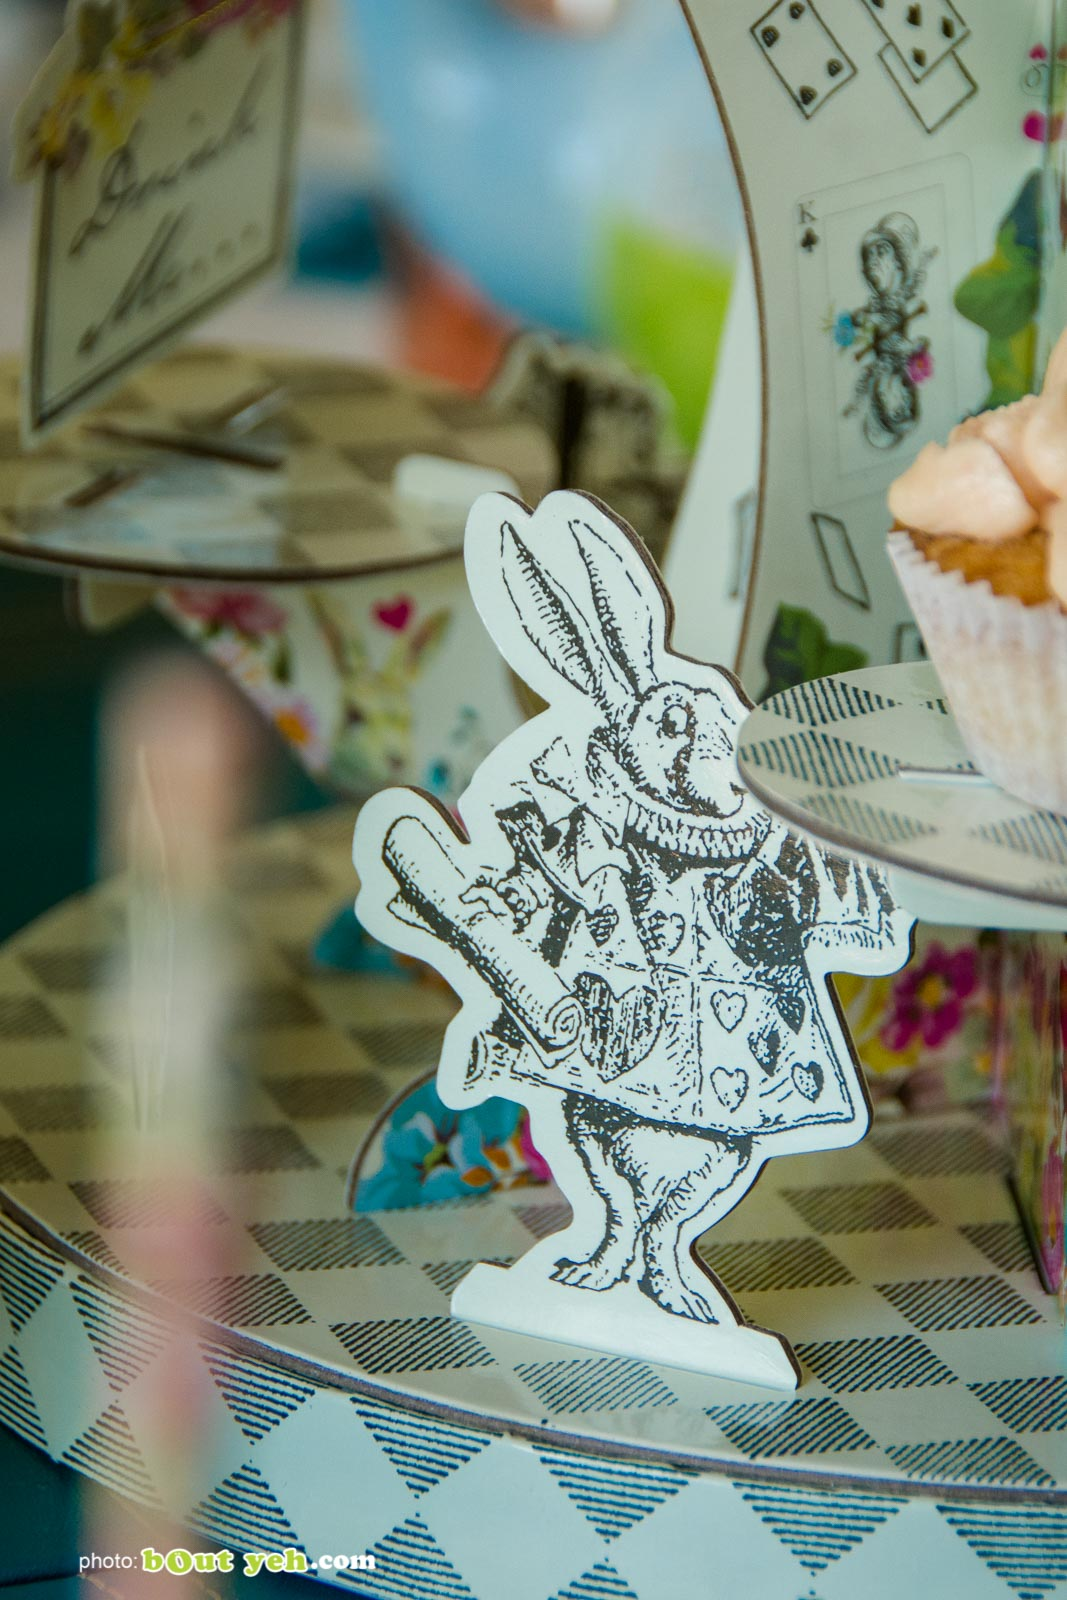 Alice in Wonderland Rabbit figure at the Bout Yeh Brexit Mad Hatters Tea Party - photo 9236 by Bout Yeh photographers Belfast